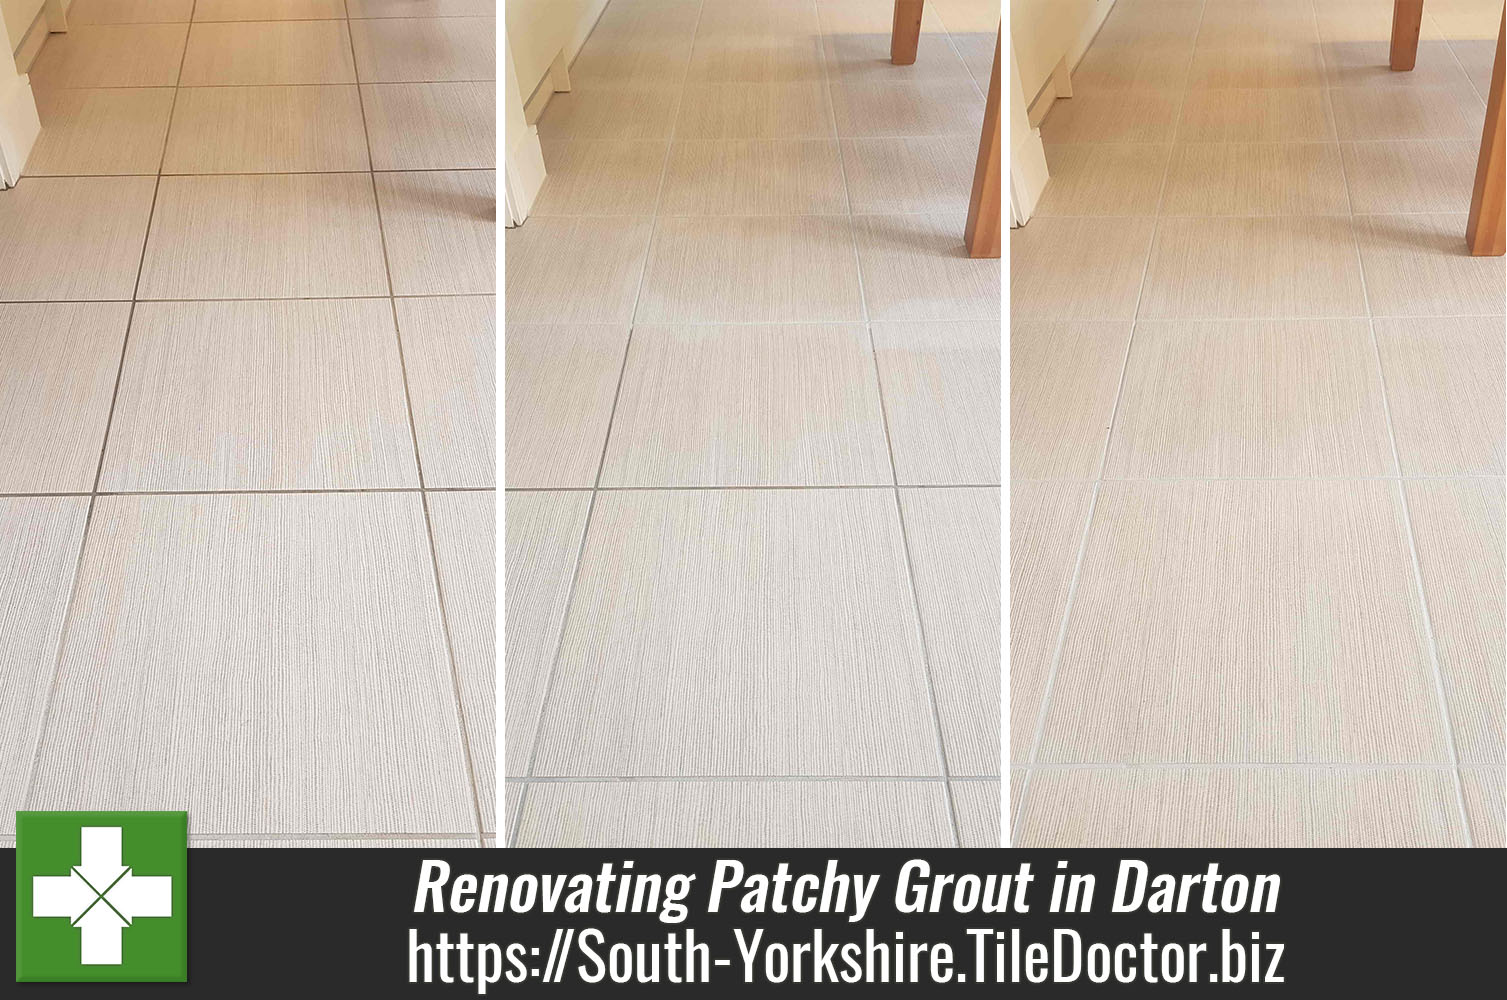 resolving patchy grout issues in